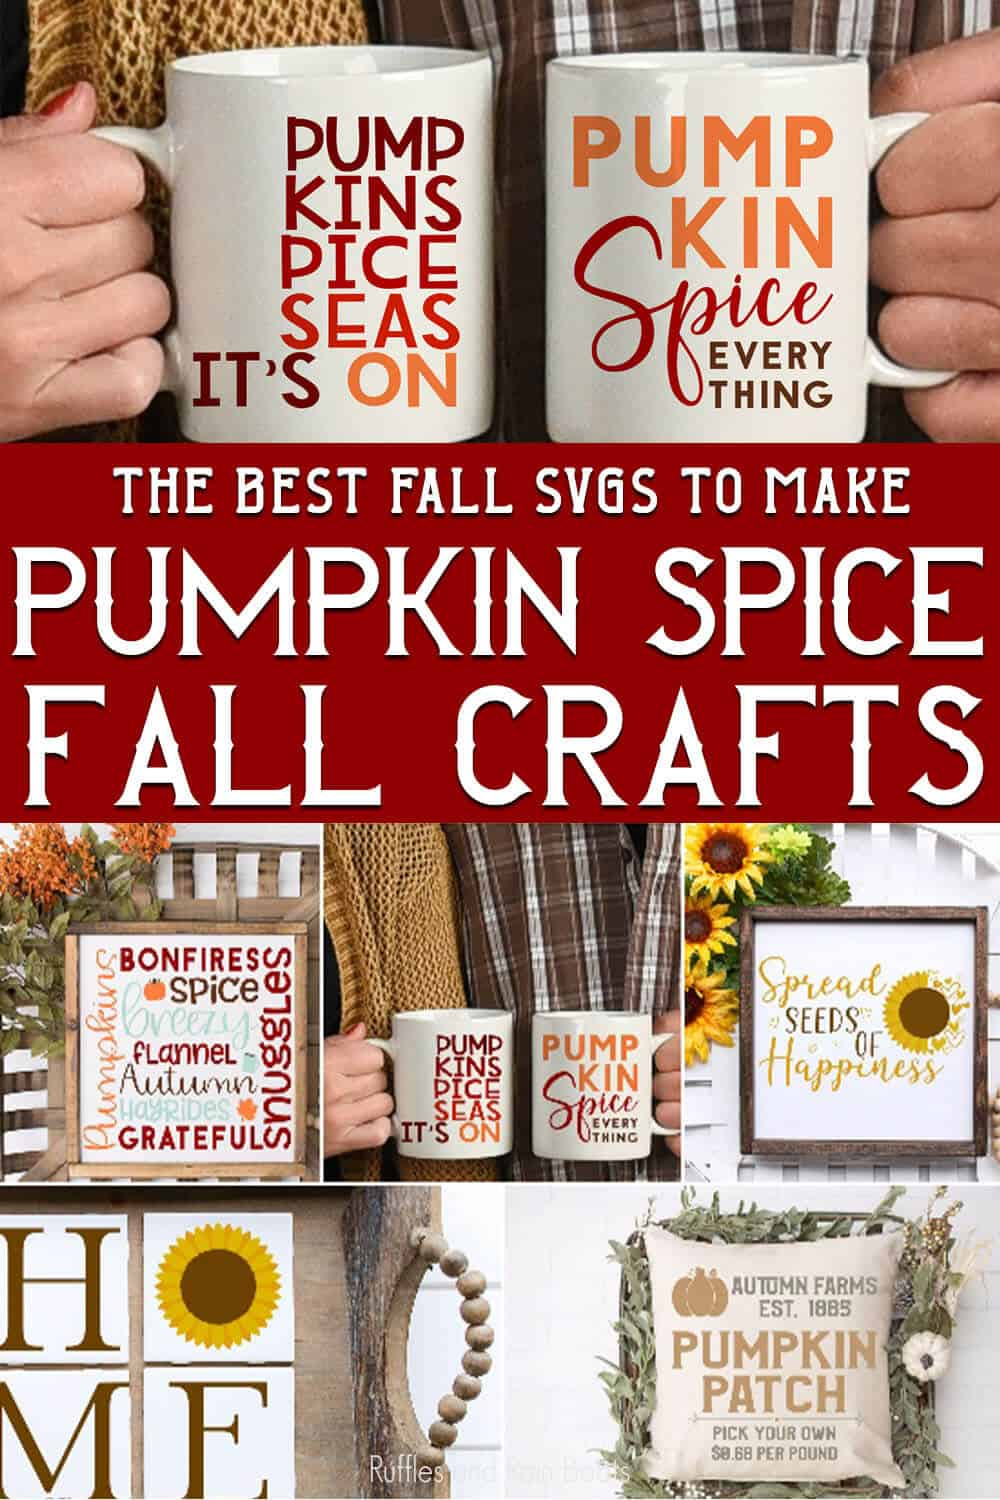 photo collage of fun fall clipart for fall crafting ideas with text which reads the best fall svgs to make pumpkin spice fall crafts